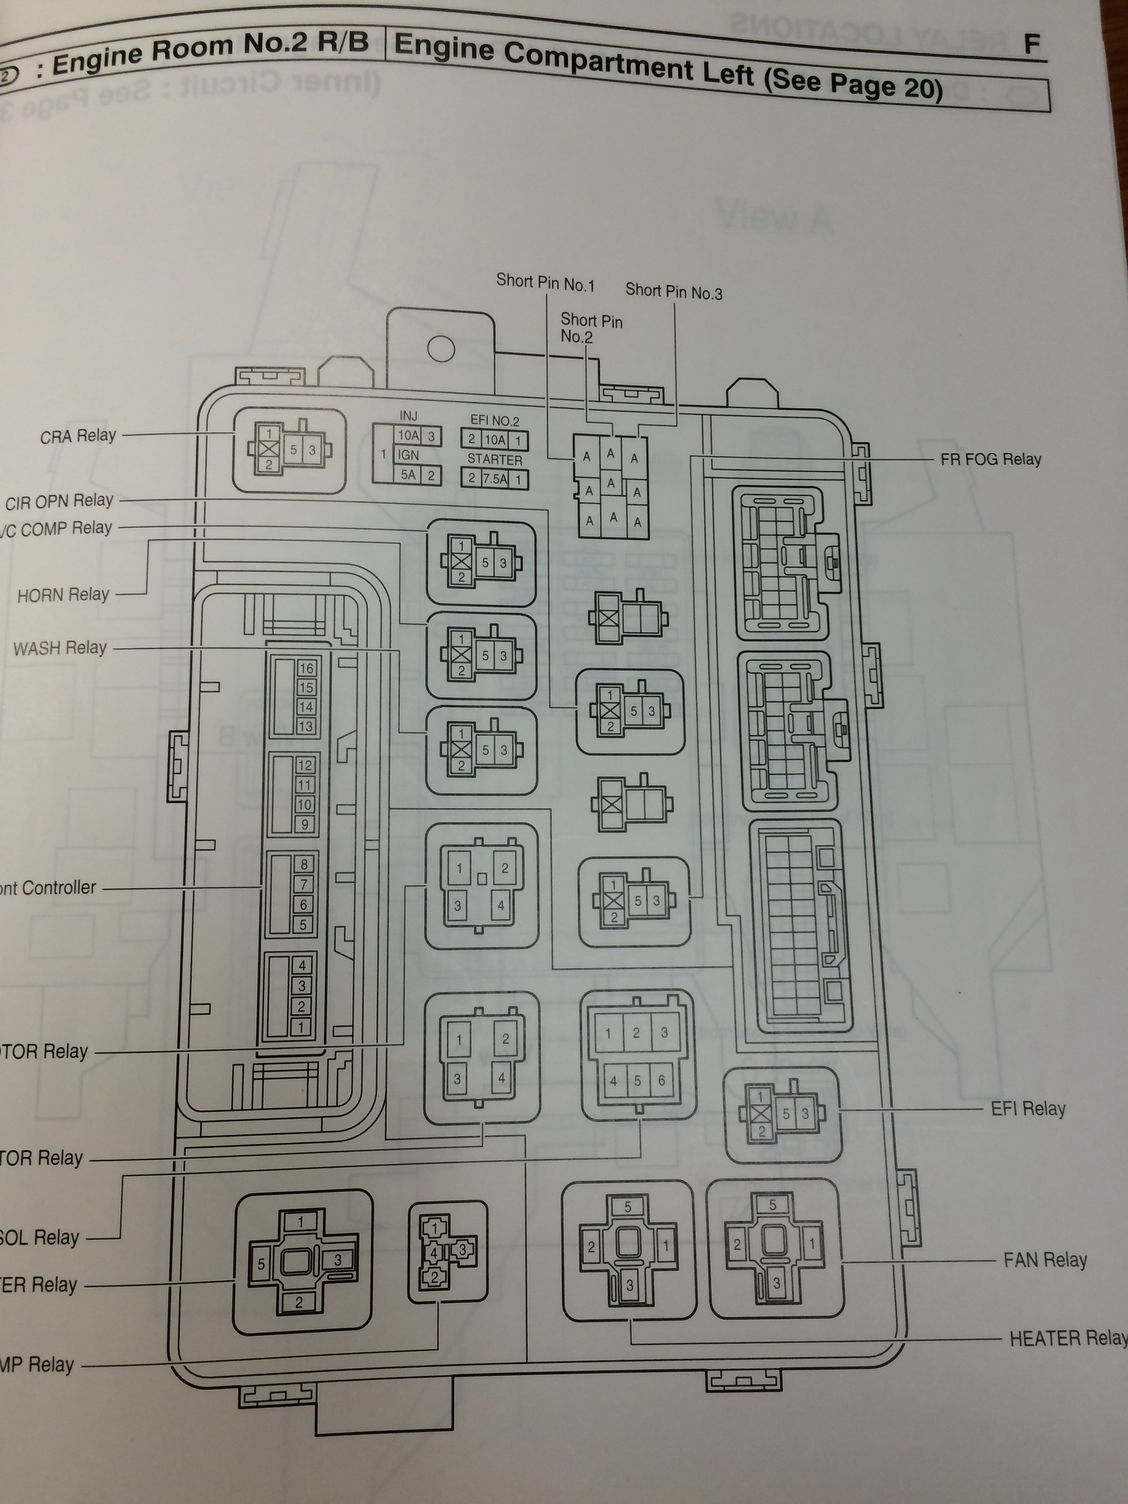 2000 Malibu Fuse Box Location Wiring Diagram Photos For Help Your